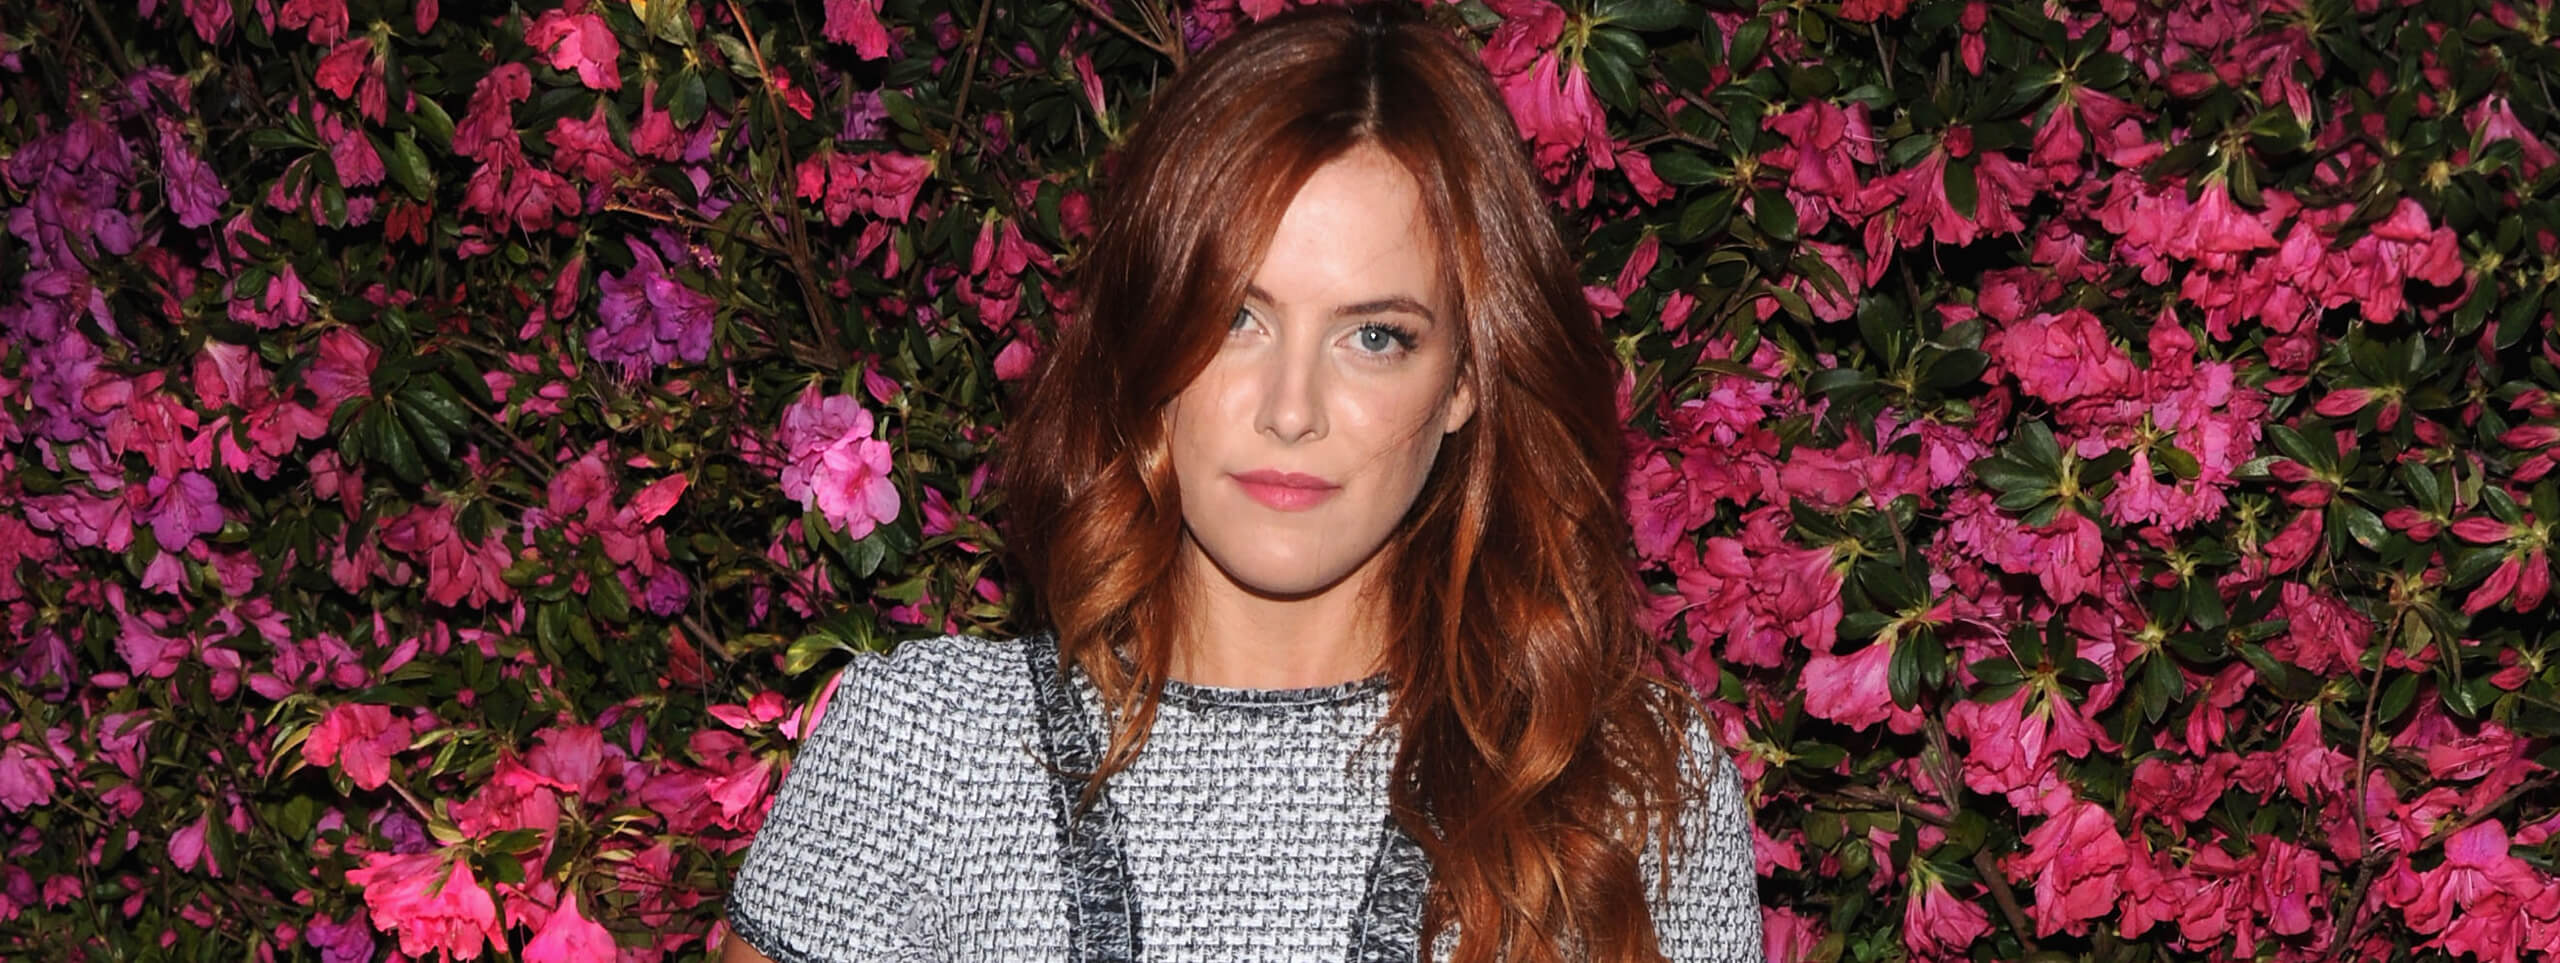 hair-color-red-celebs